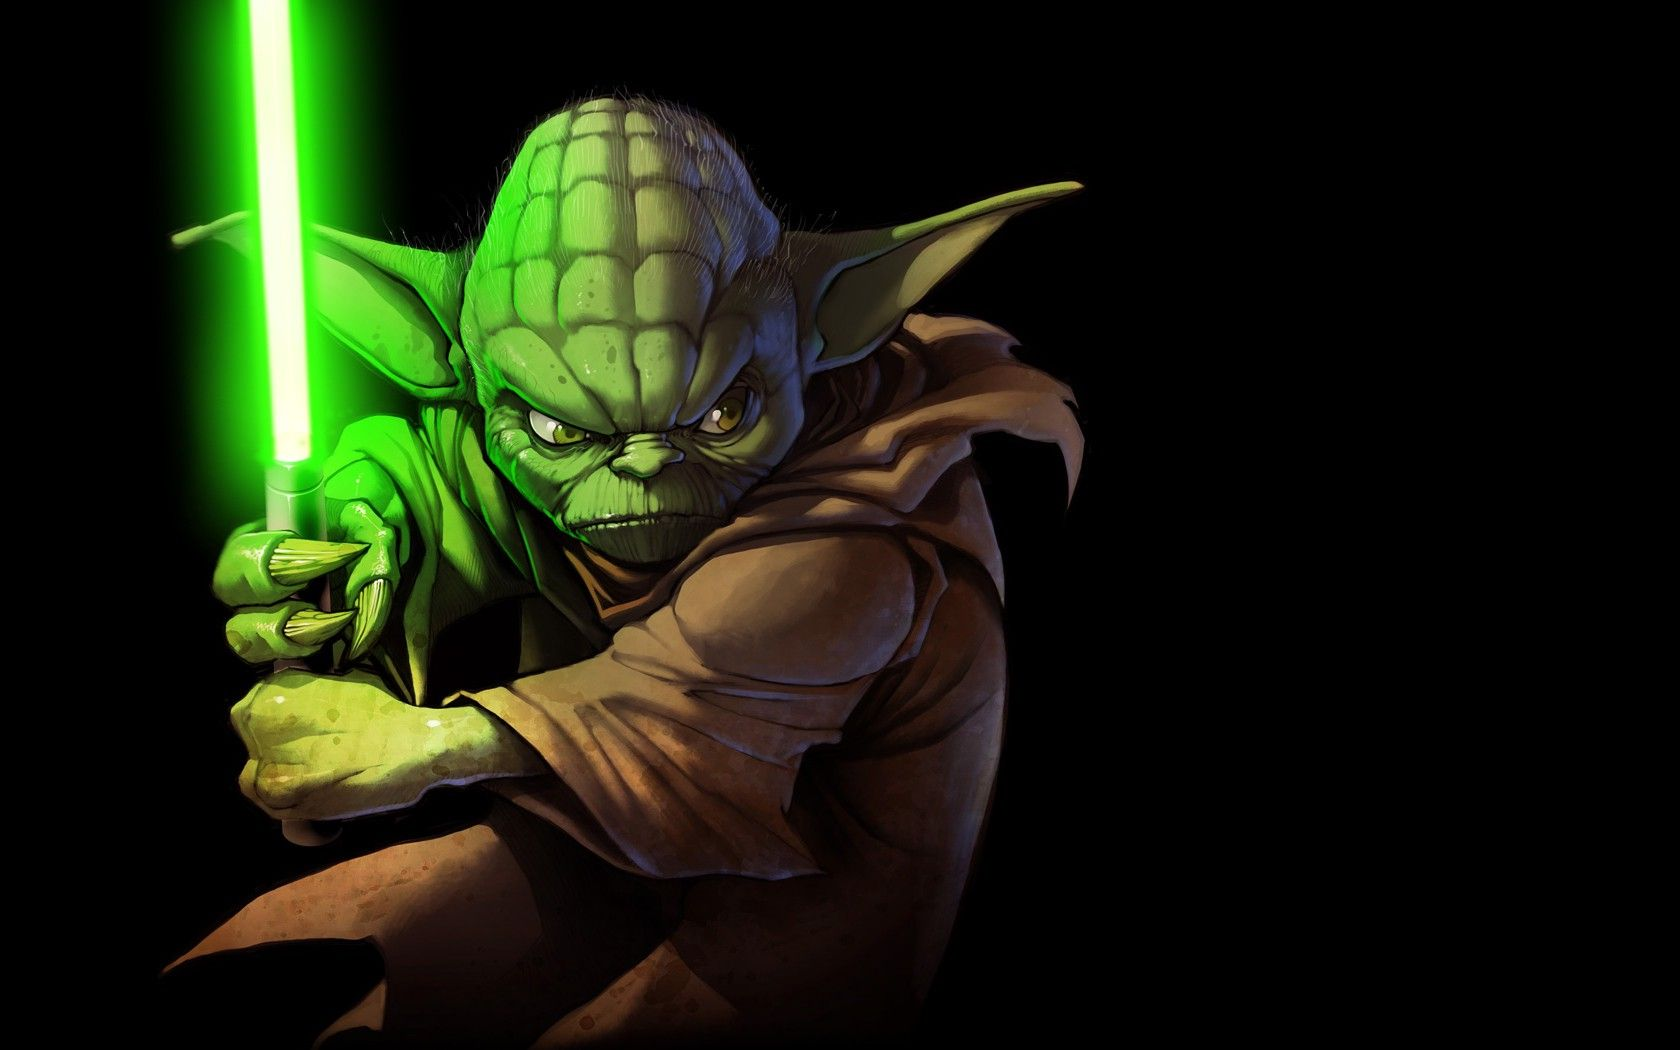 Yoda Star Wars Lightsaber Wallpapers Hd Desktop And Mobile